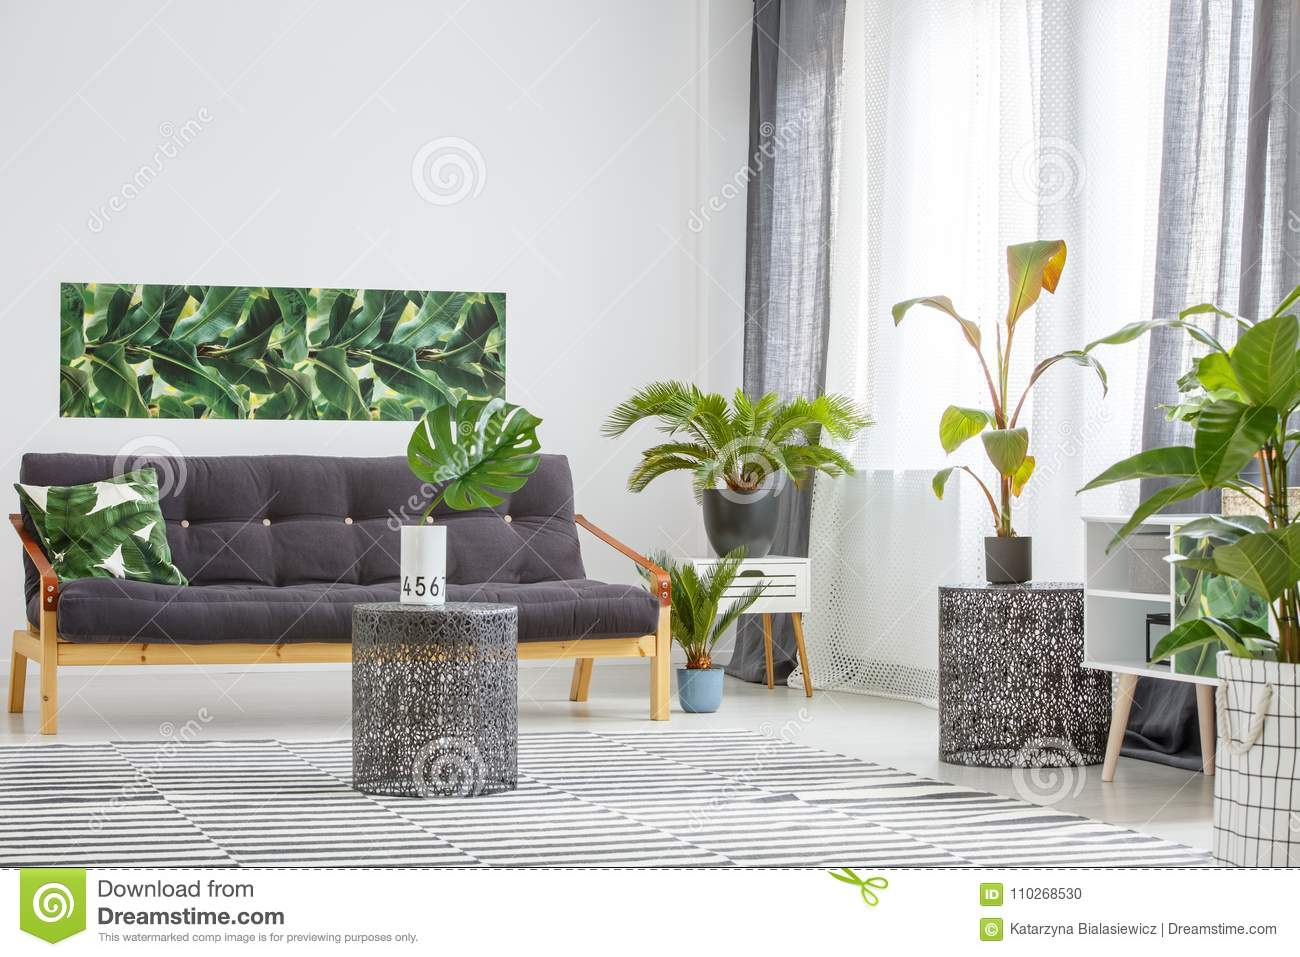 Sofa surrounded by plants stock photo. Image of banana - 110268530